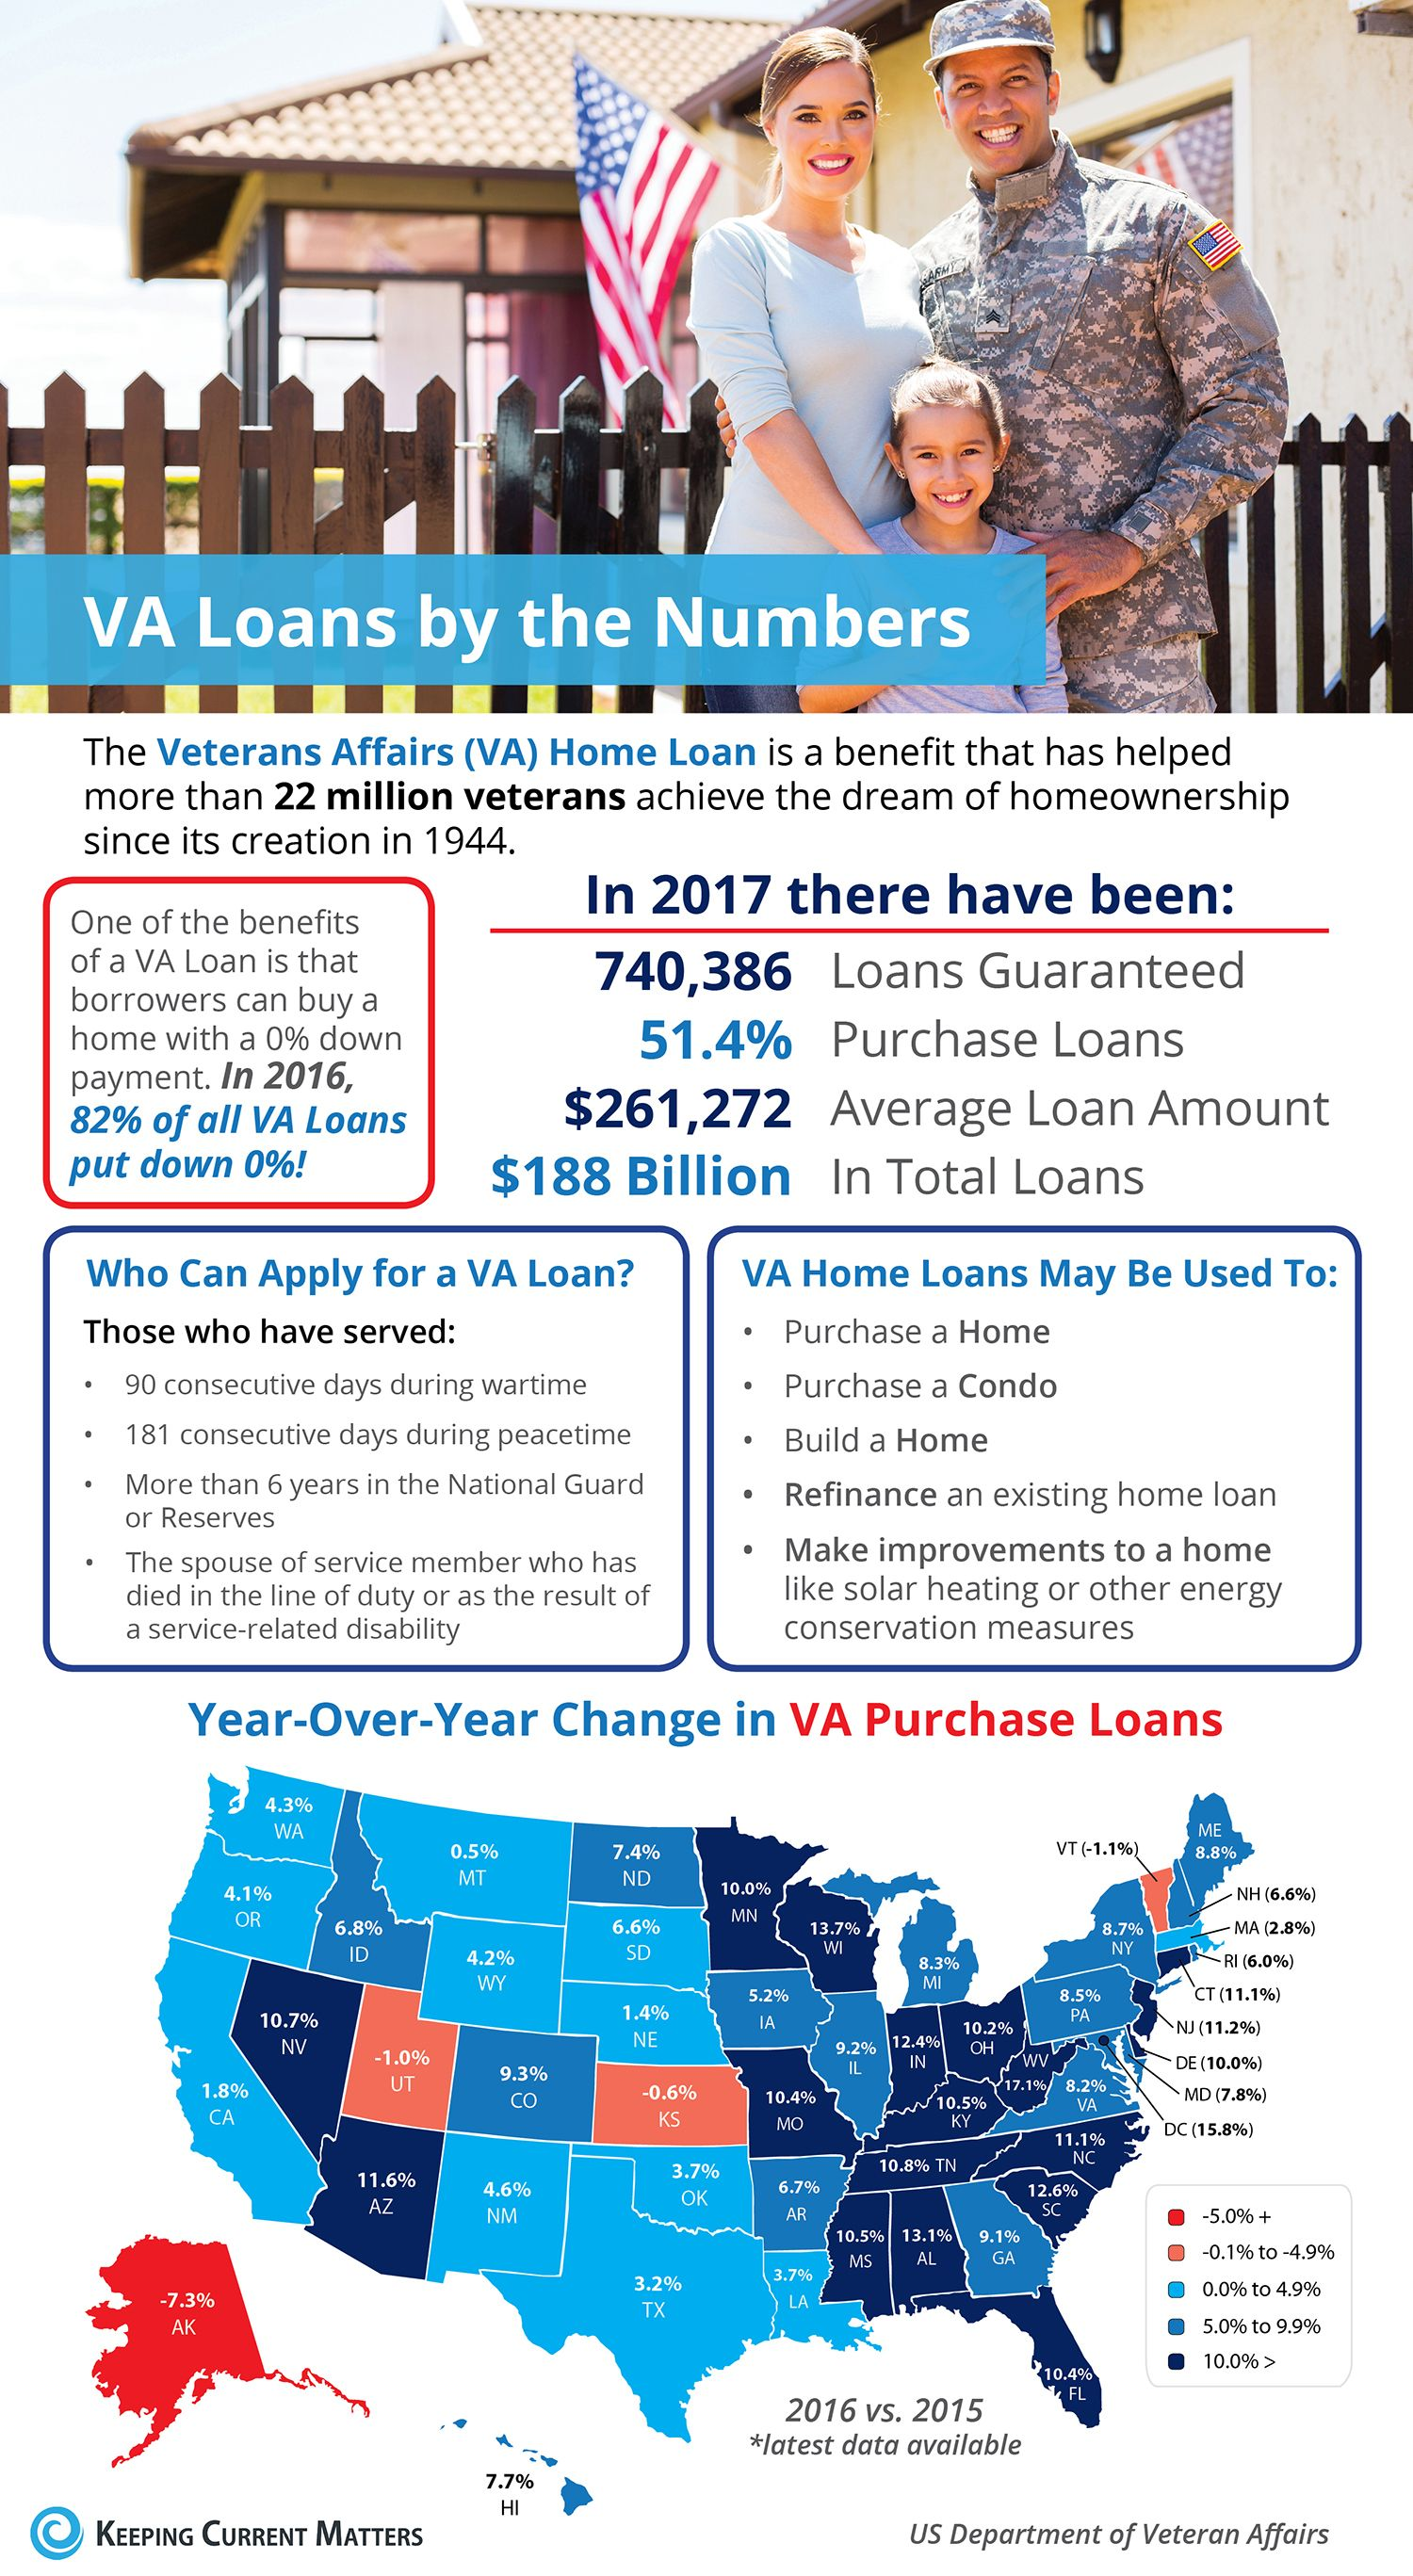 Veterans Affairs Loans By The Numbers Infographic Keeping Current Matters Www Suekrider Com Veteransday Home Ownership Home Buying Home Buying Tips